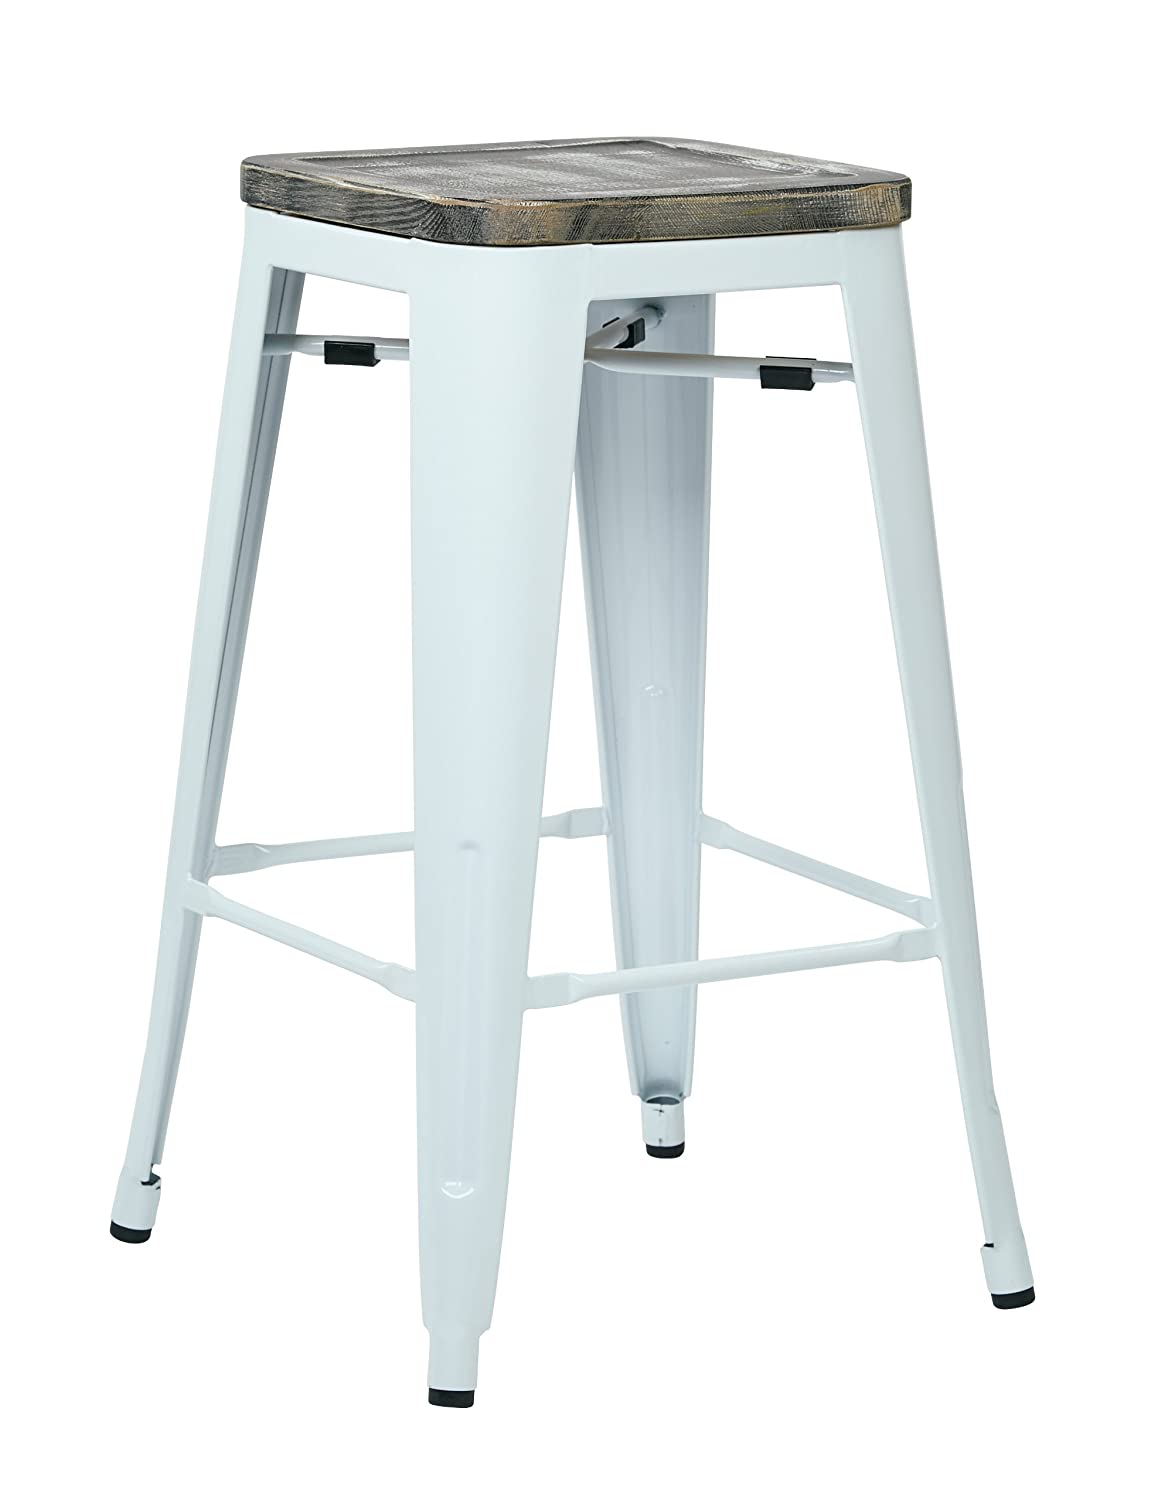 metal bar stools with wood seat. Amazon.com: Office Star Bristow 26-Inch White Metal Frame Barstool With Vintage Wood Seat, Ash Crazy Horse, 4-Pack: Kitchen \u0026 Dining Bar Stools Seat S